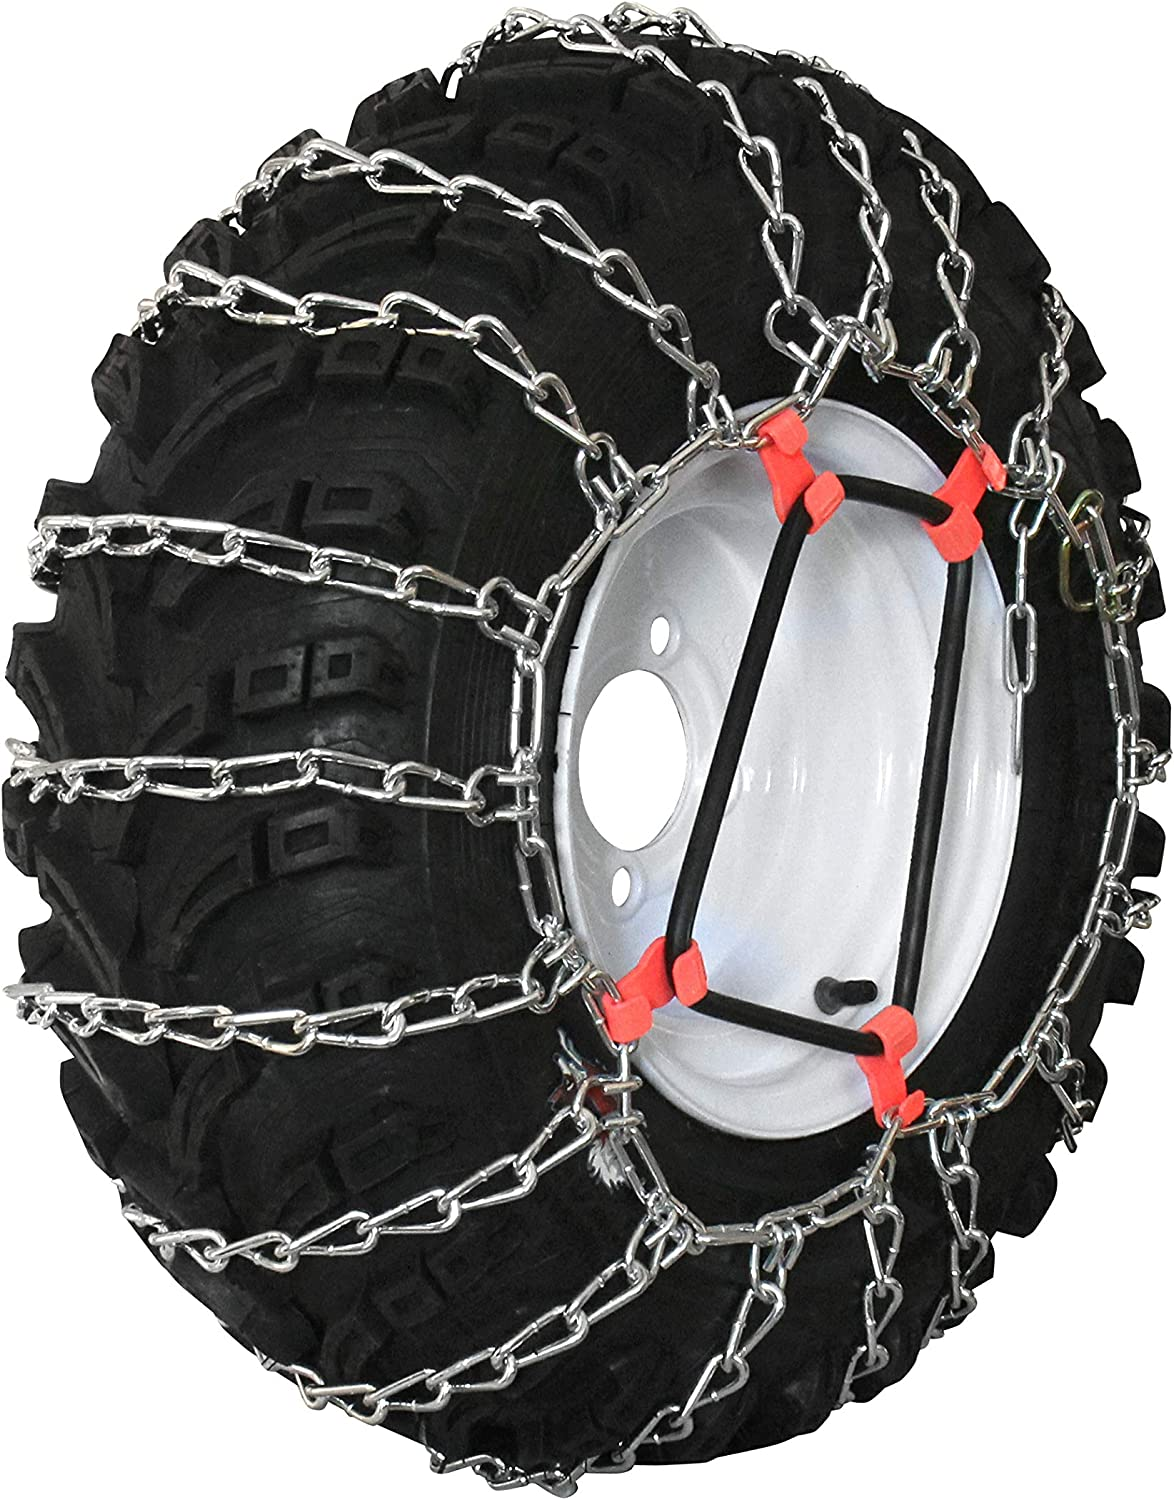 Grizzlar GTU-268 Garden Tractor 2 Link Ladder Alloy Tire Chains Tensioner Included 20x10.50-12 21x10.50-12 22x10.00-12 22x7.50-12 8x12